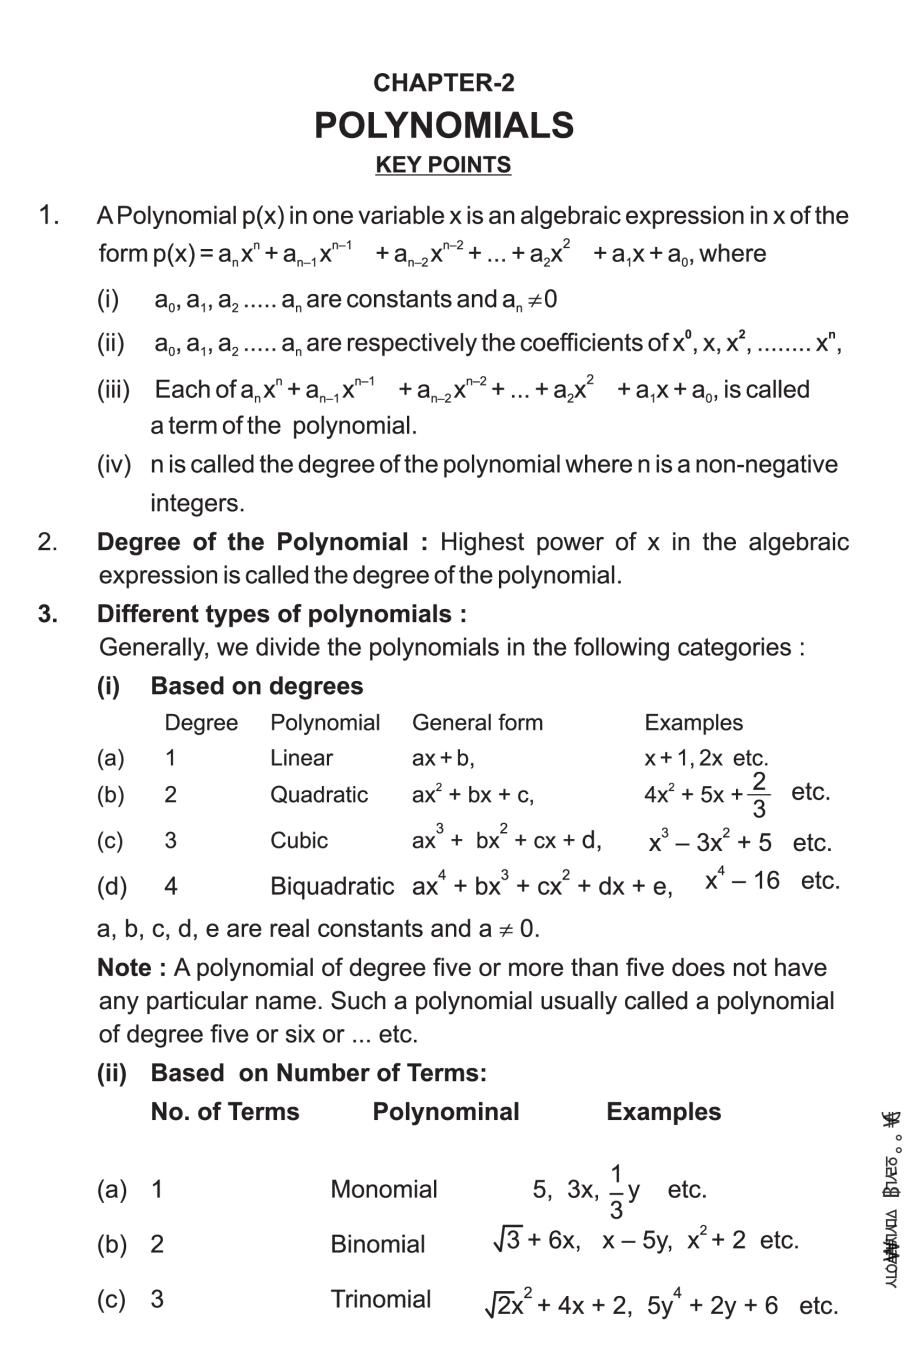 Class 9 Maths Notes For Polynomials In 2021 Math Notes College Math Notes Polynomials [ 1355 x 920 Pixel ]